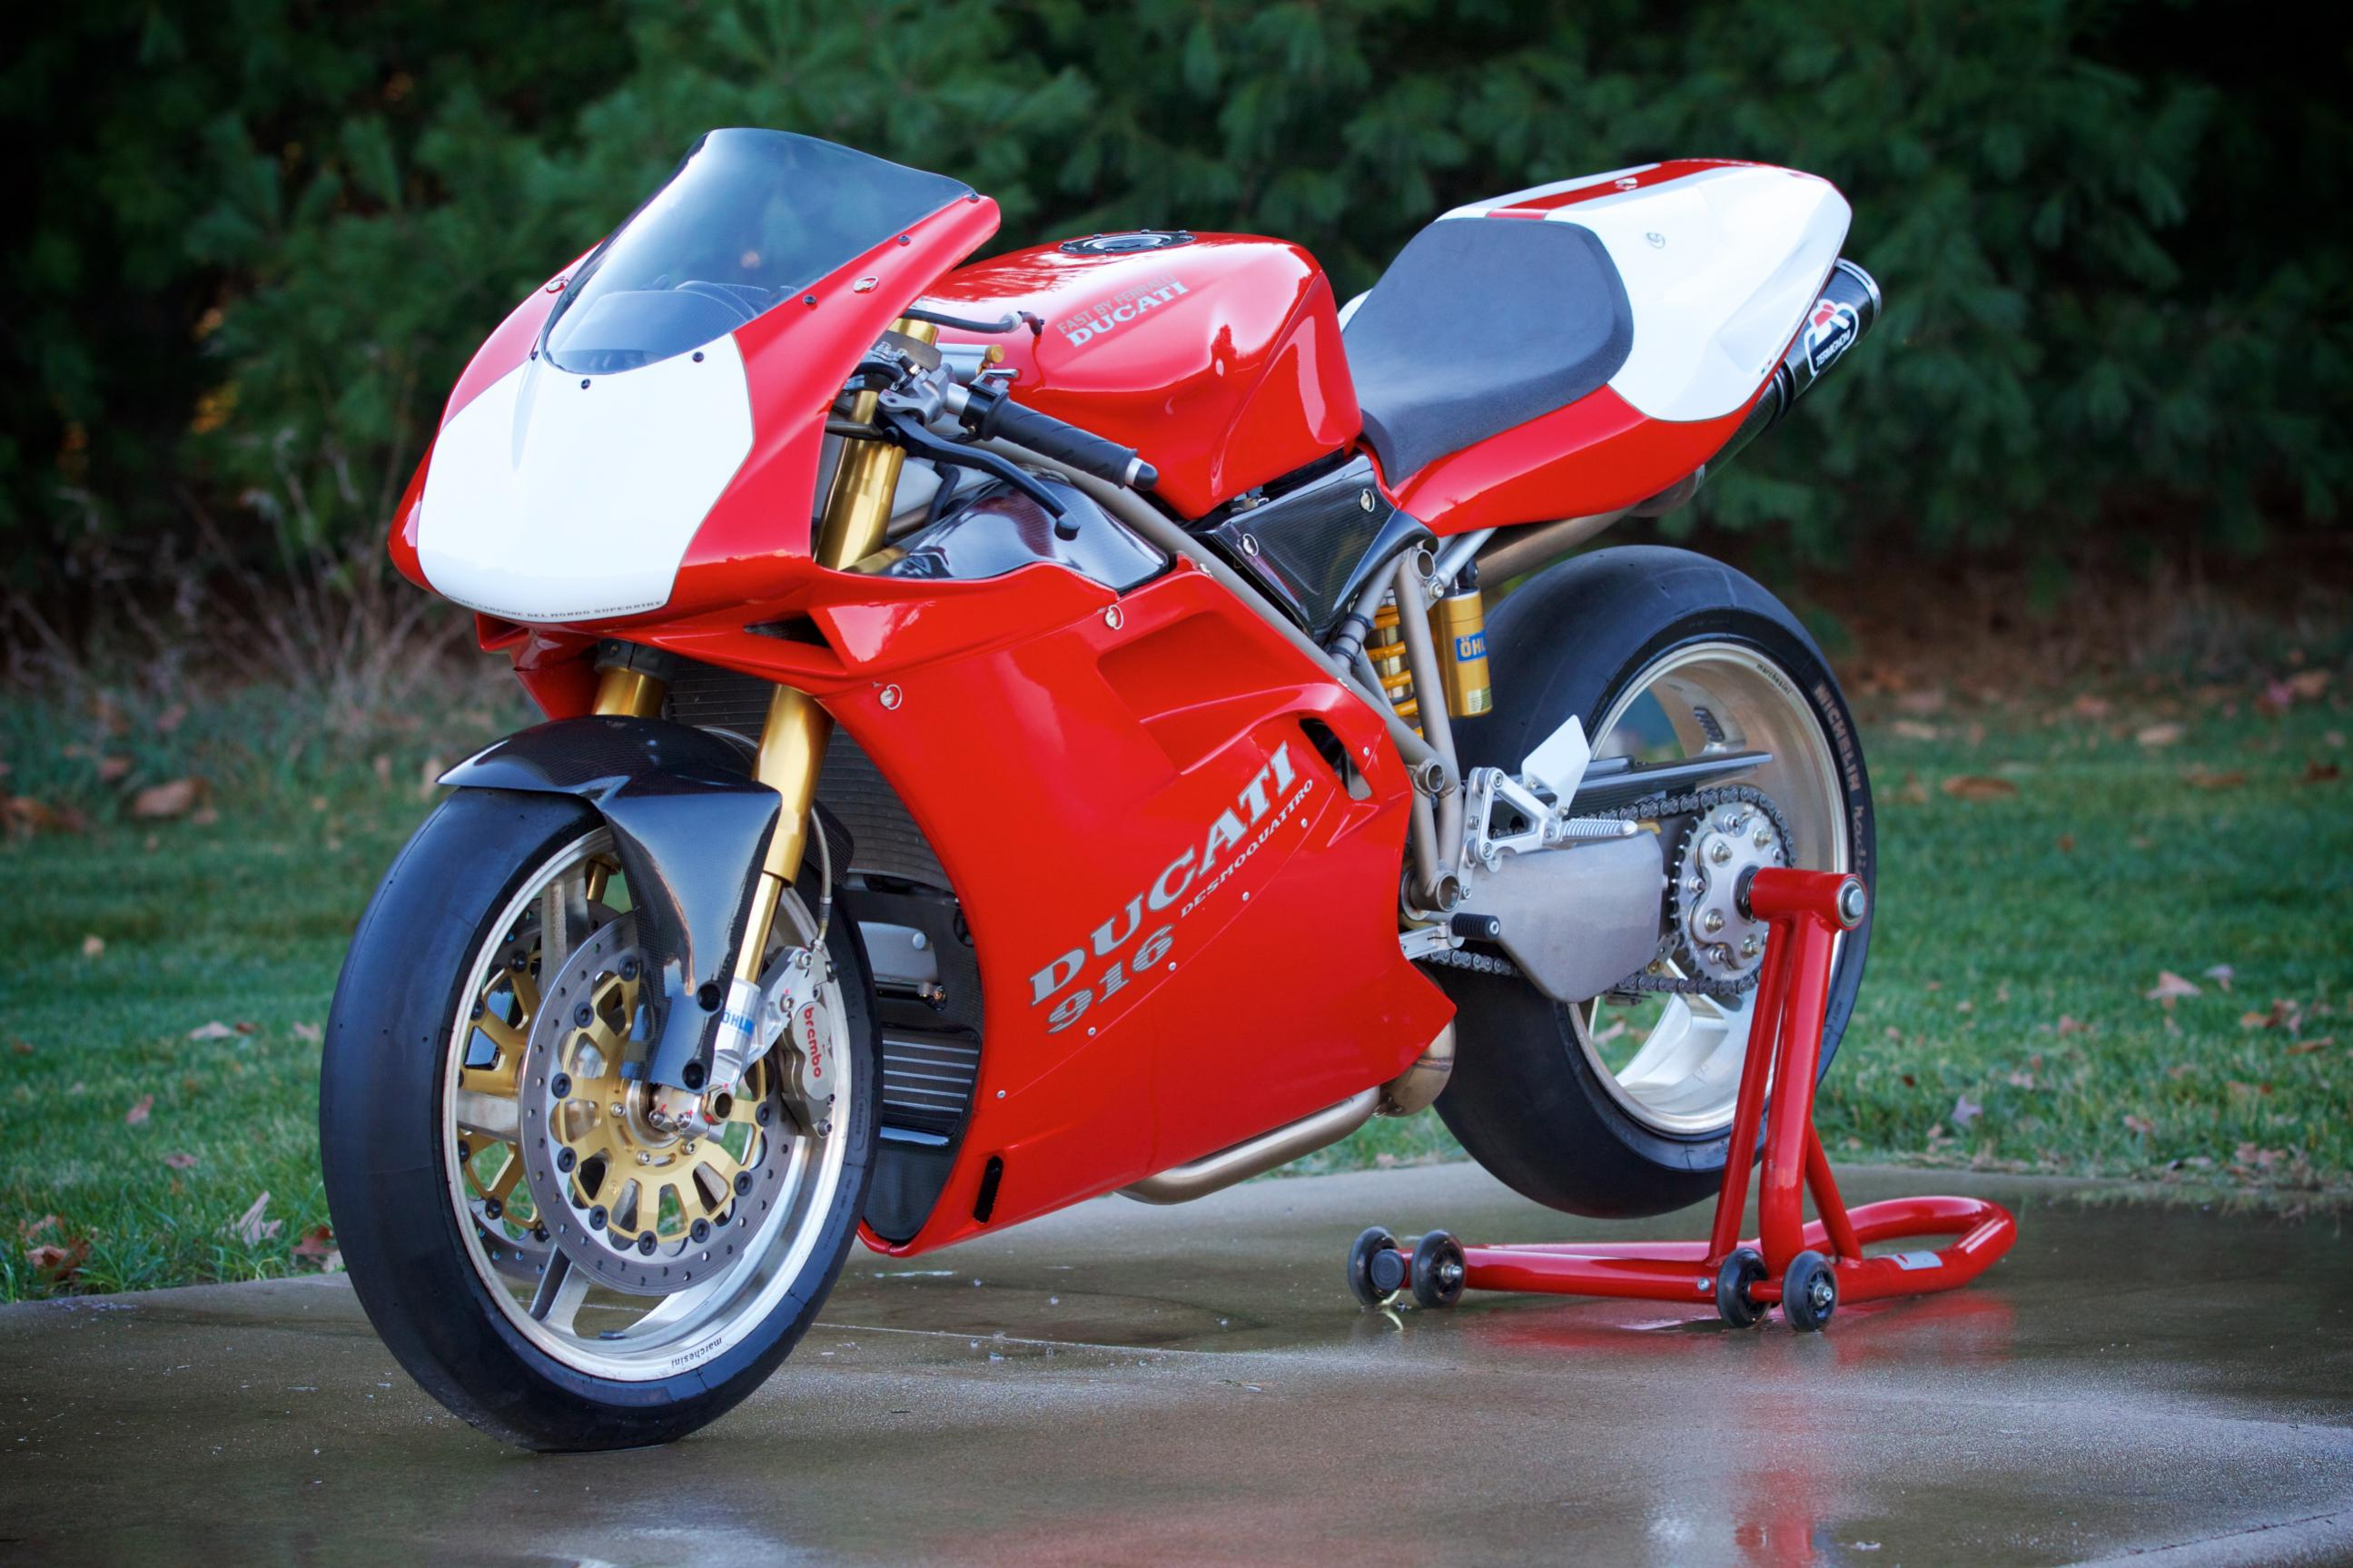 1995 916 Corsa 955 Racing Page 3 Ducati Ms The